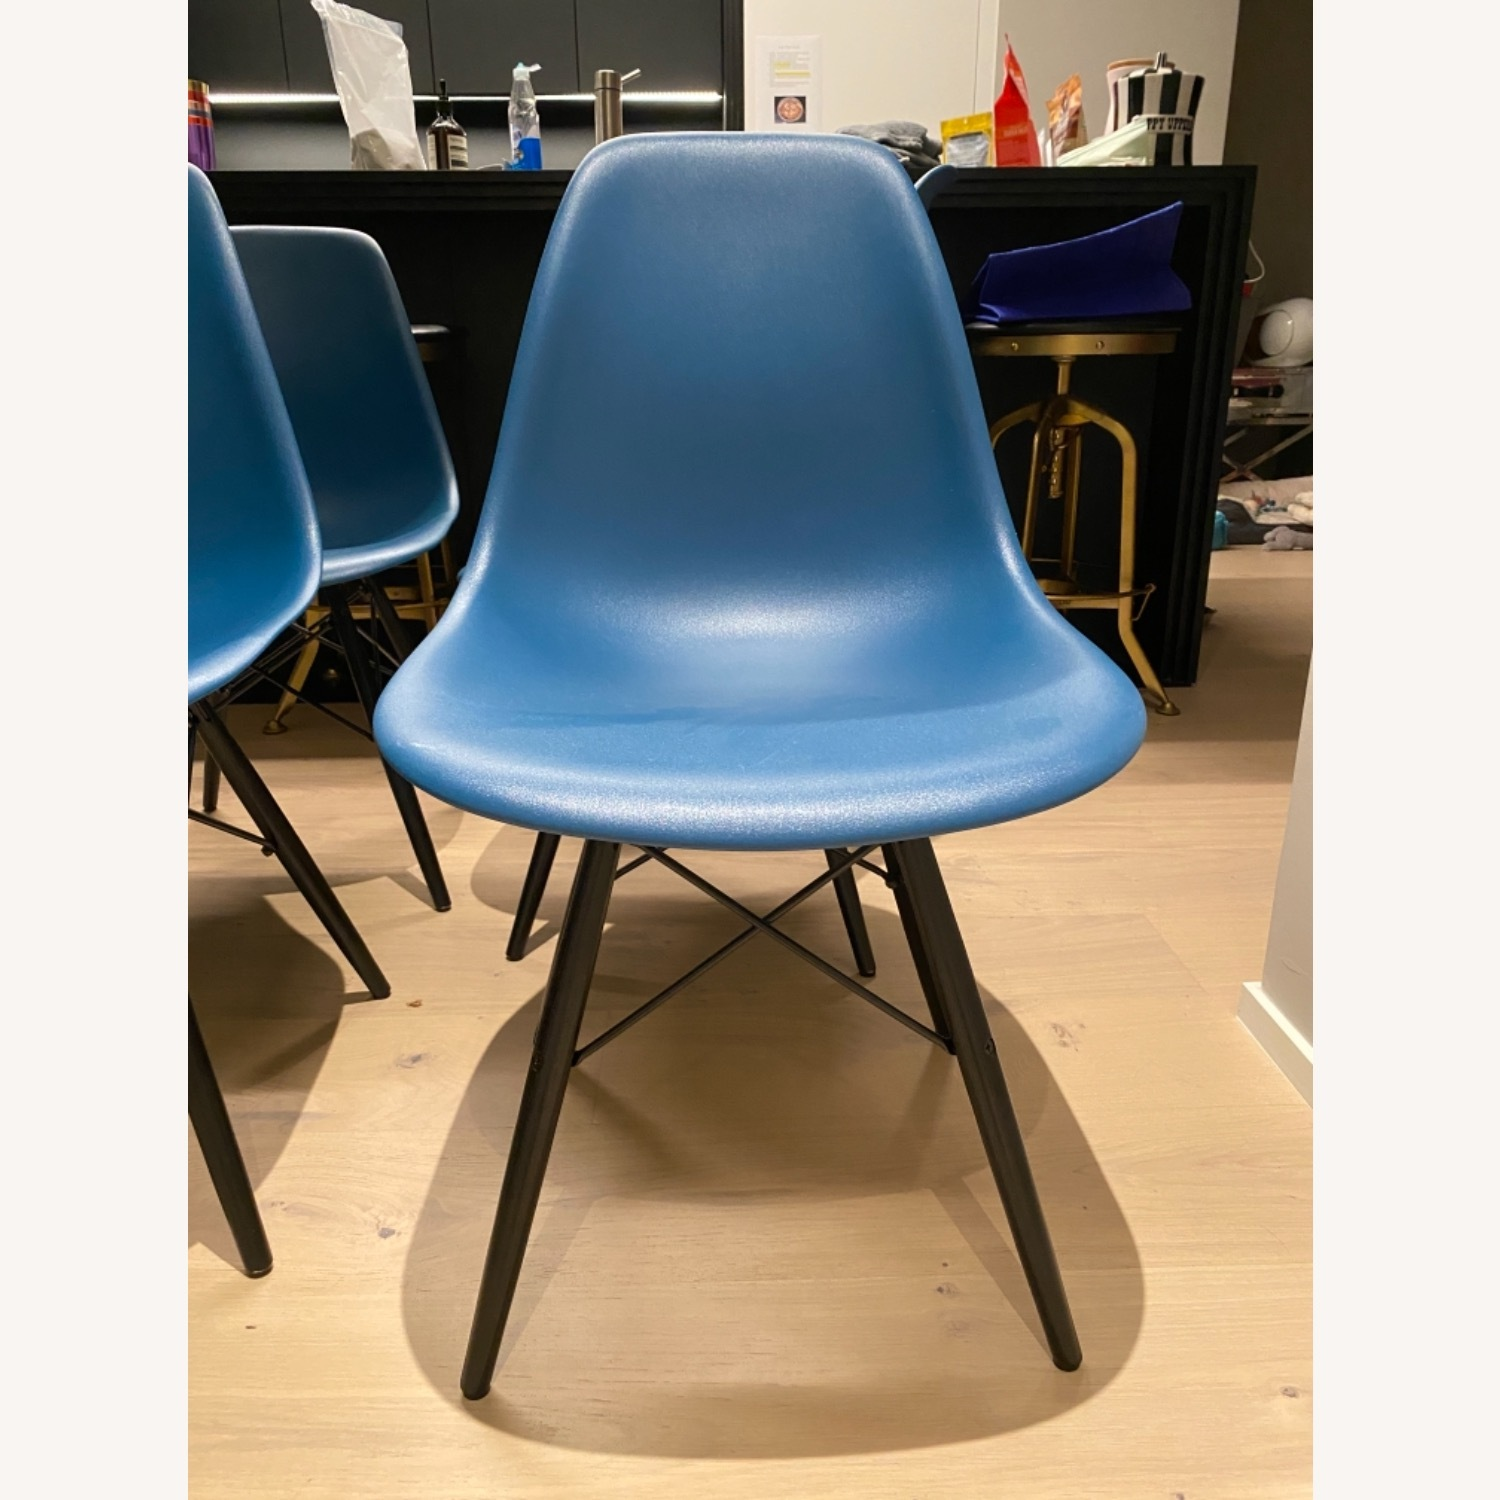 4 x Herman Miller Eames Molded Plastic Side Chair - image-17